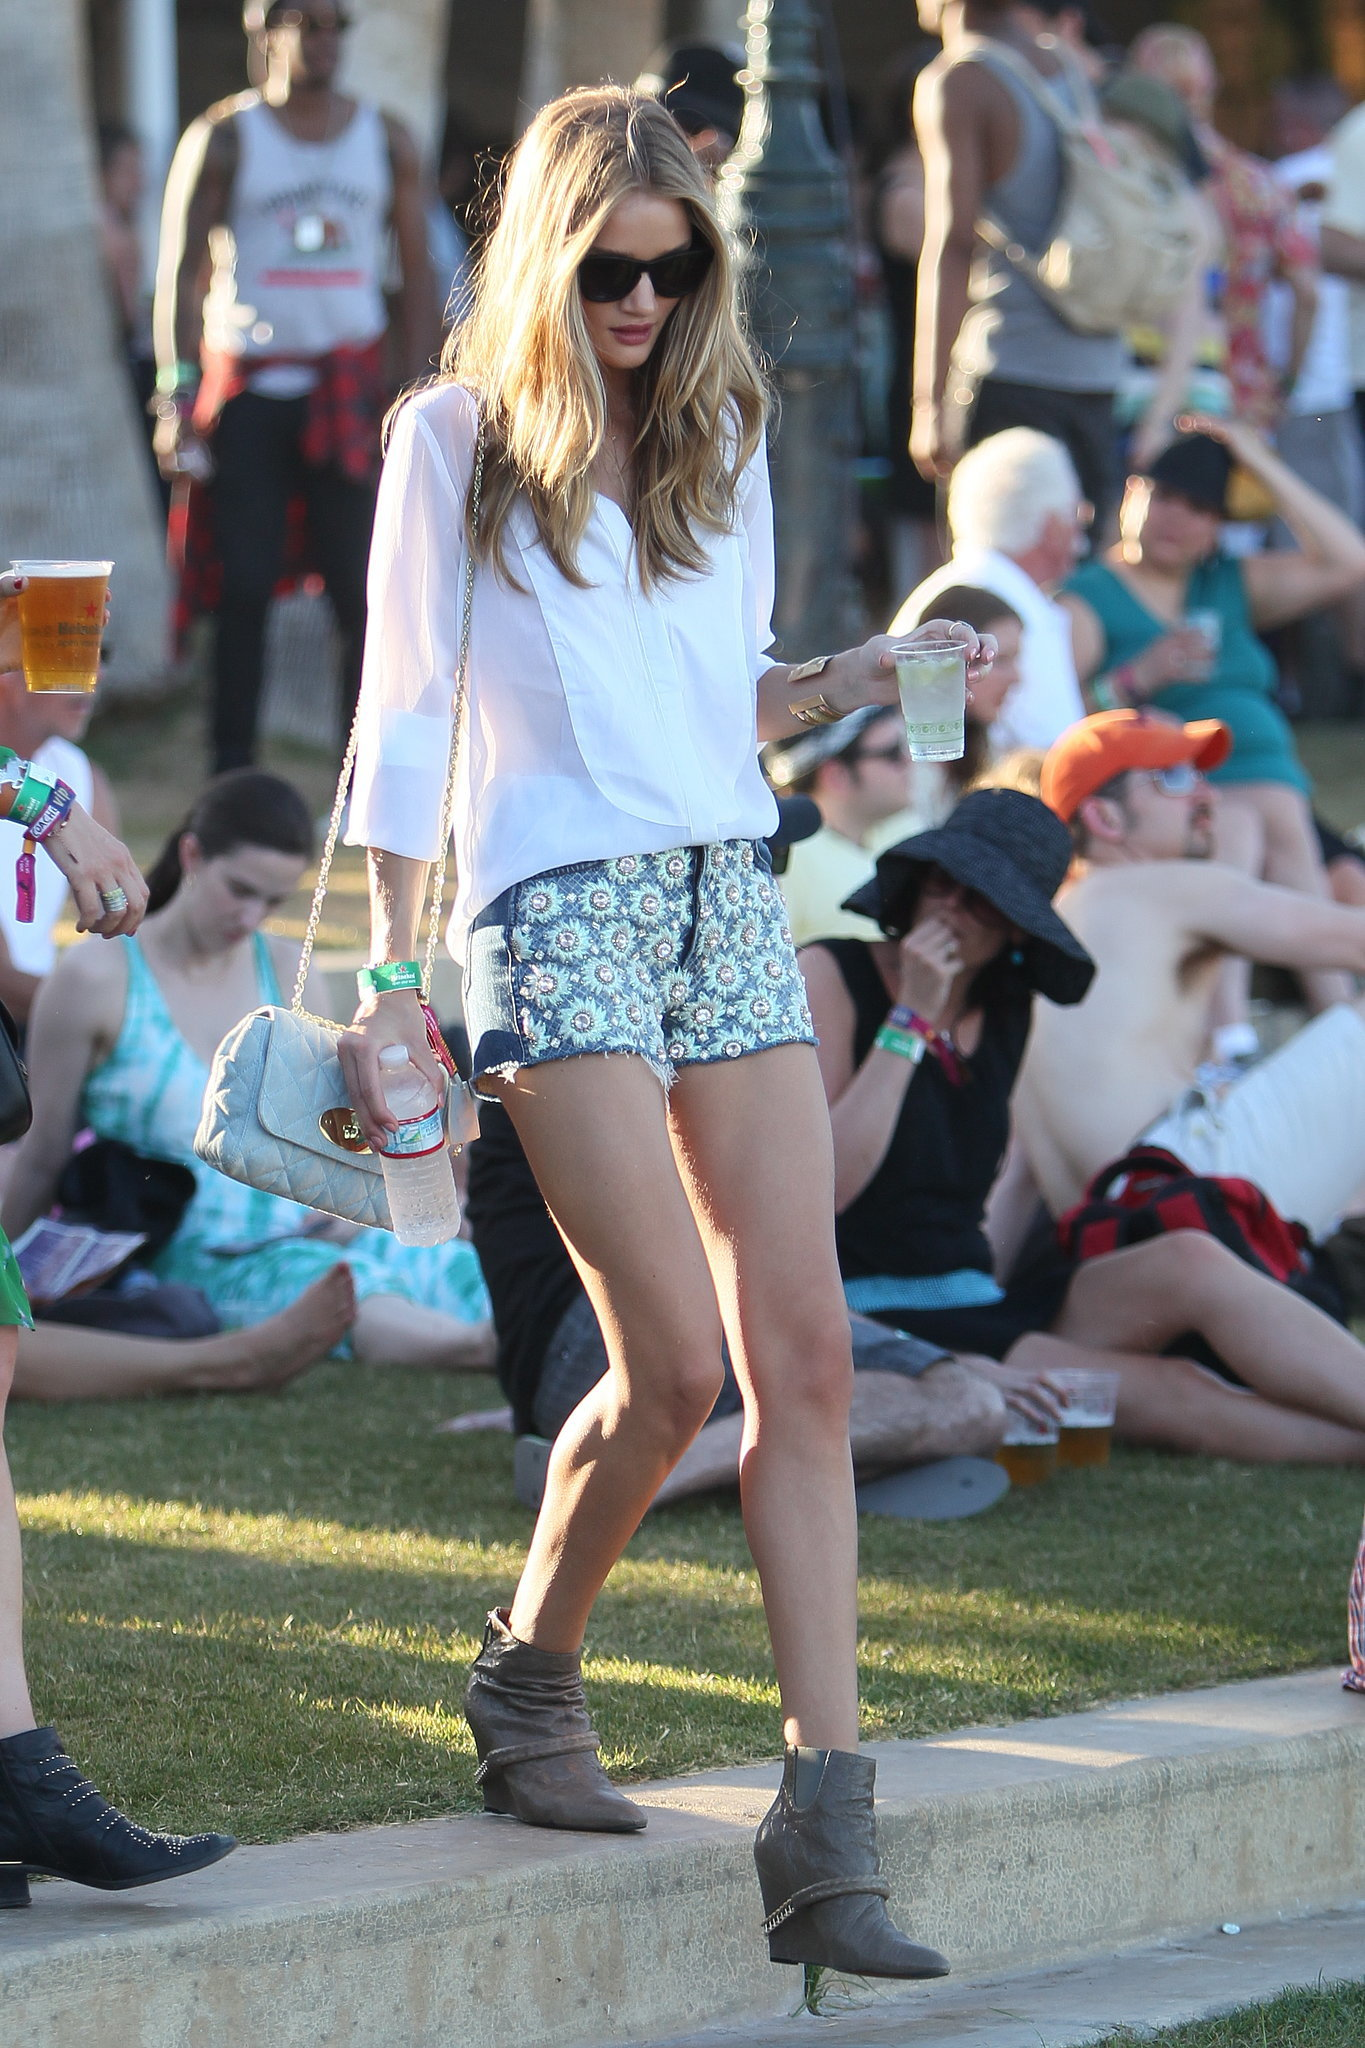 Rosie Huntington-Whiteley made good use of her daisy-print denim with a breezy white button-down and ankle boots at Coachella.